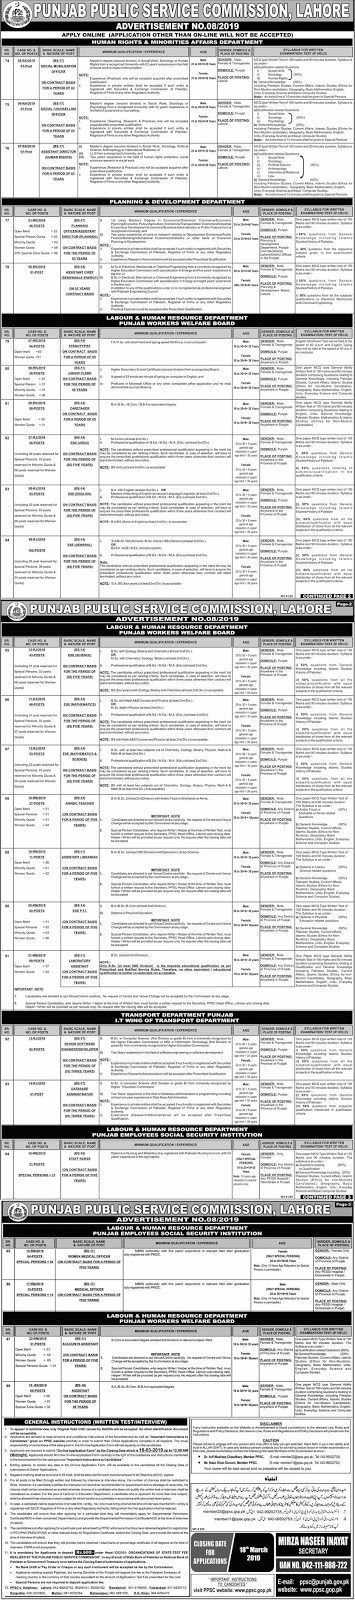 PPSC Jobs, PPSC Advertisement no 08, ppsc latest jobs march 2019